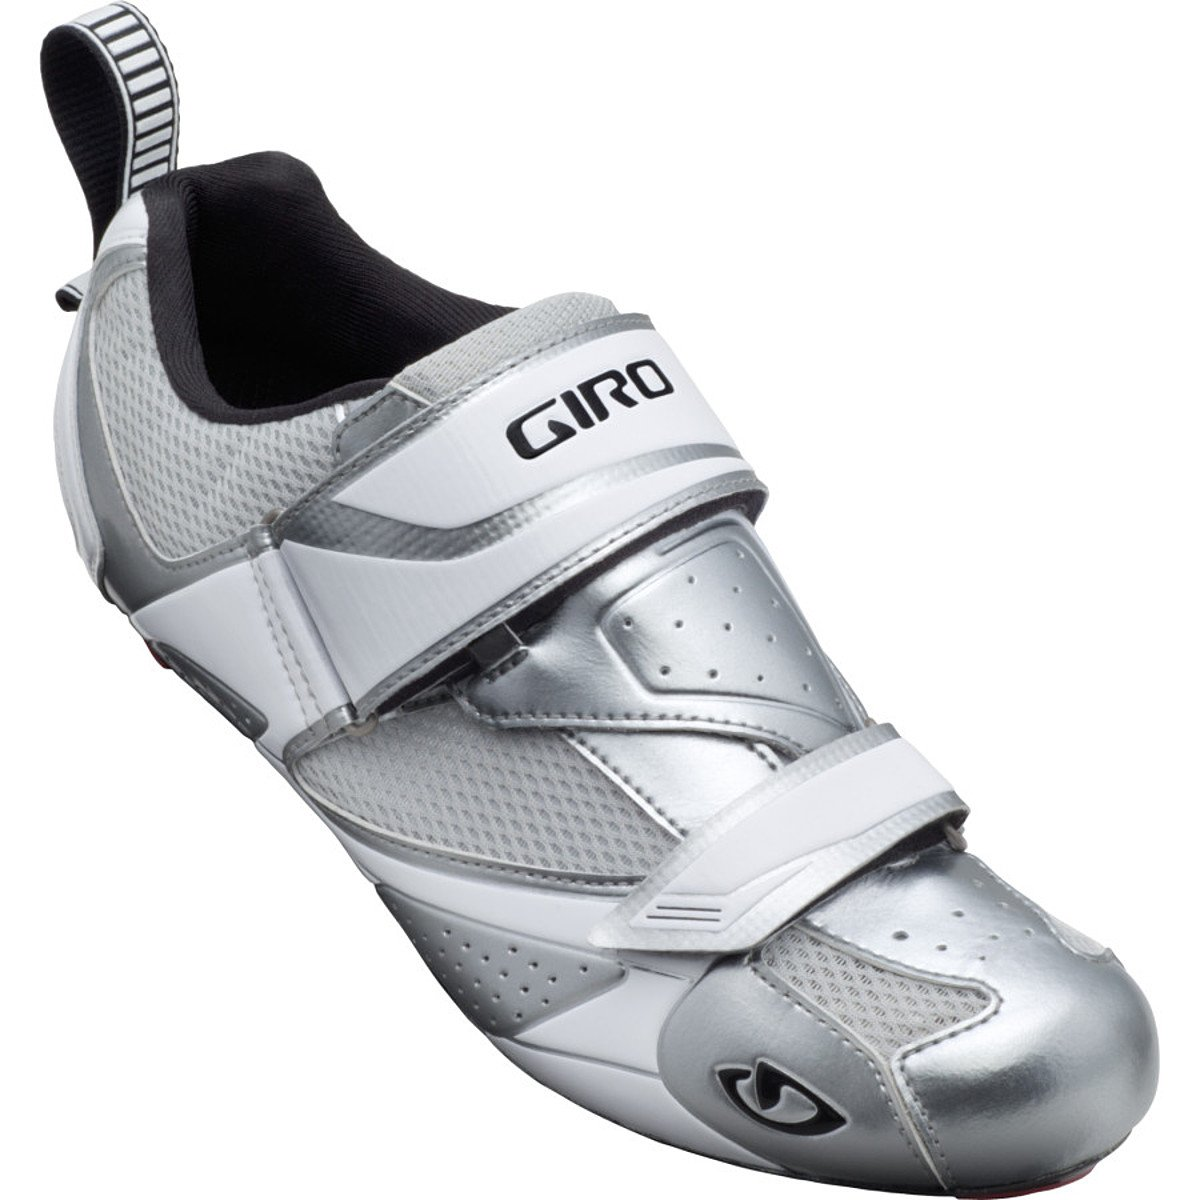 Chrome White Giro Petra VR shoes